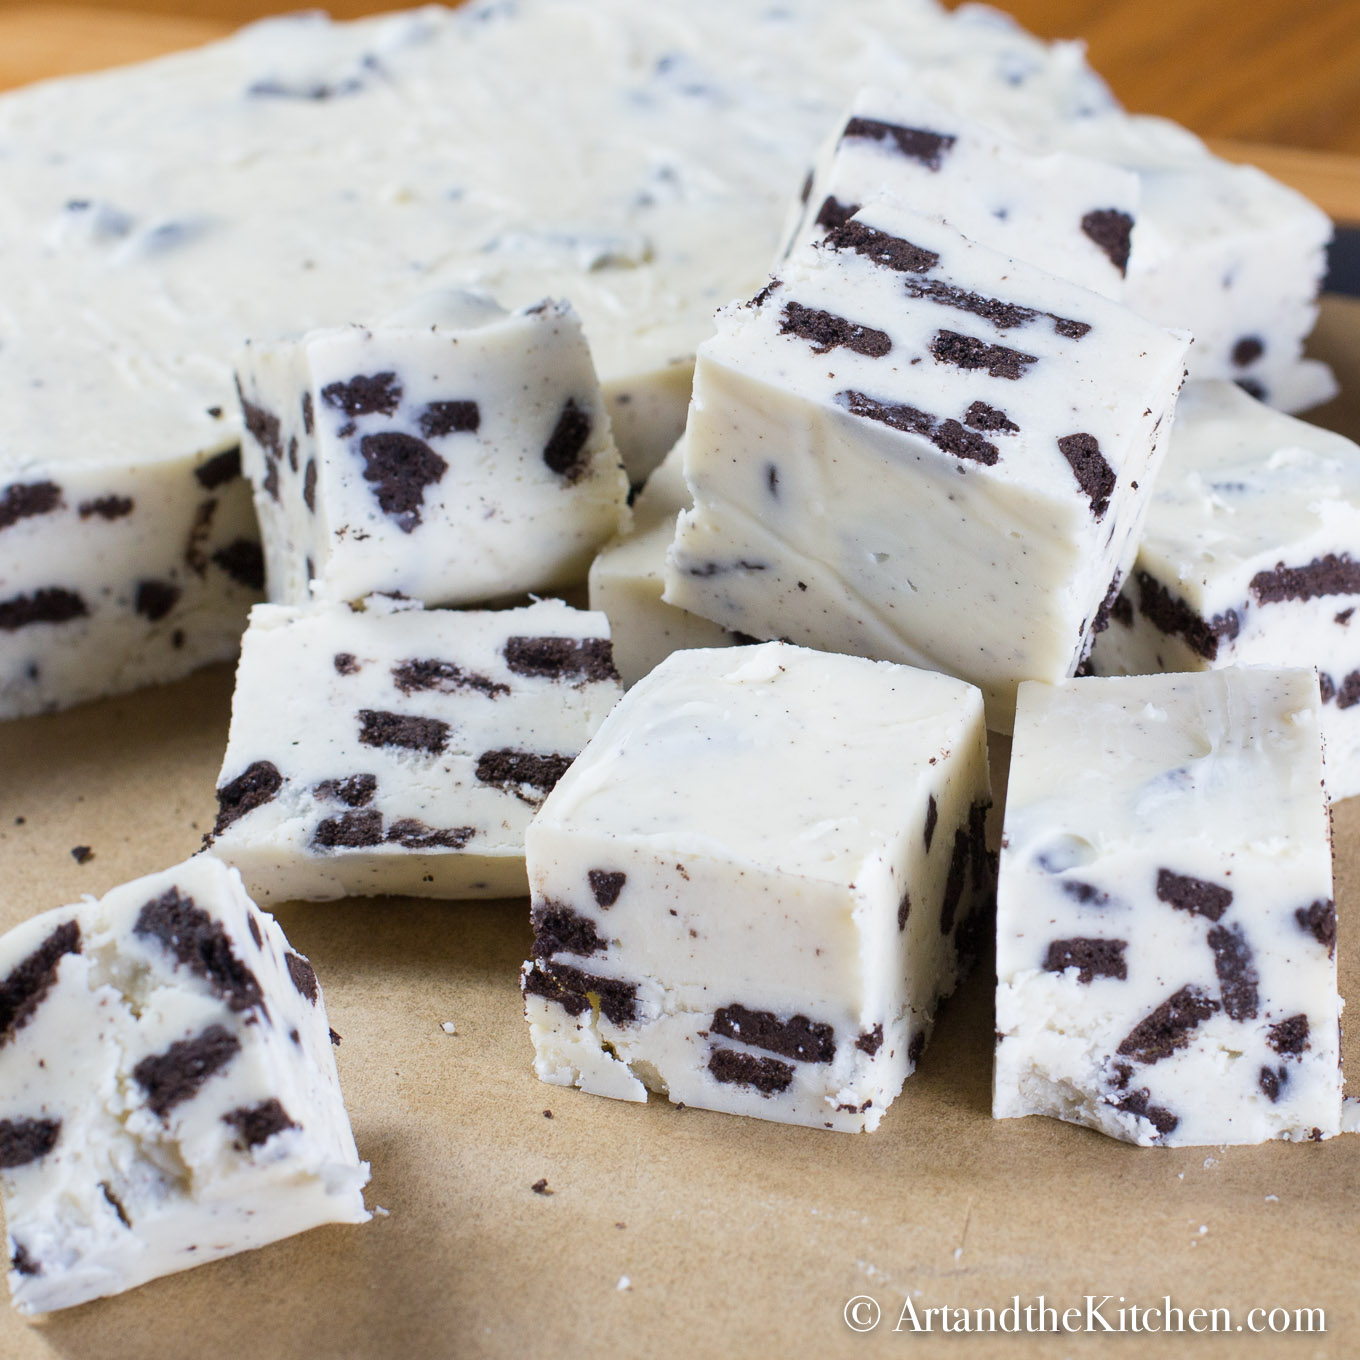 Chocolate Cookes N Cream Dunmore Candy Kitchen: Cookies And Cream Fudge